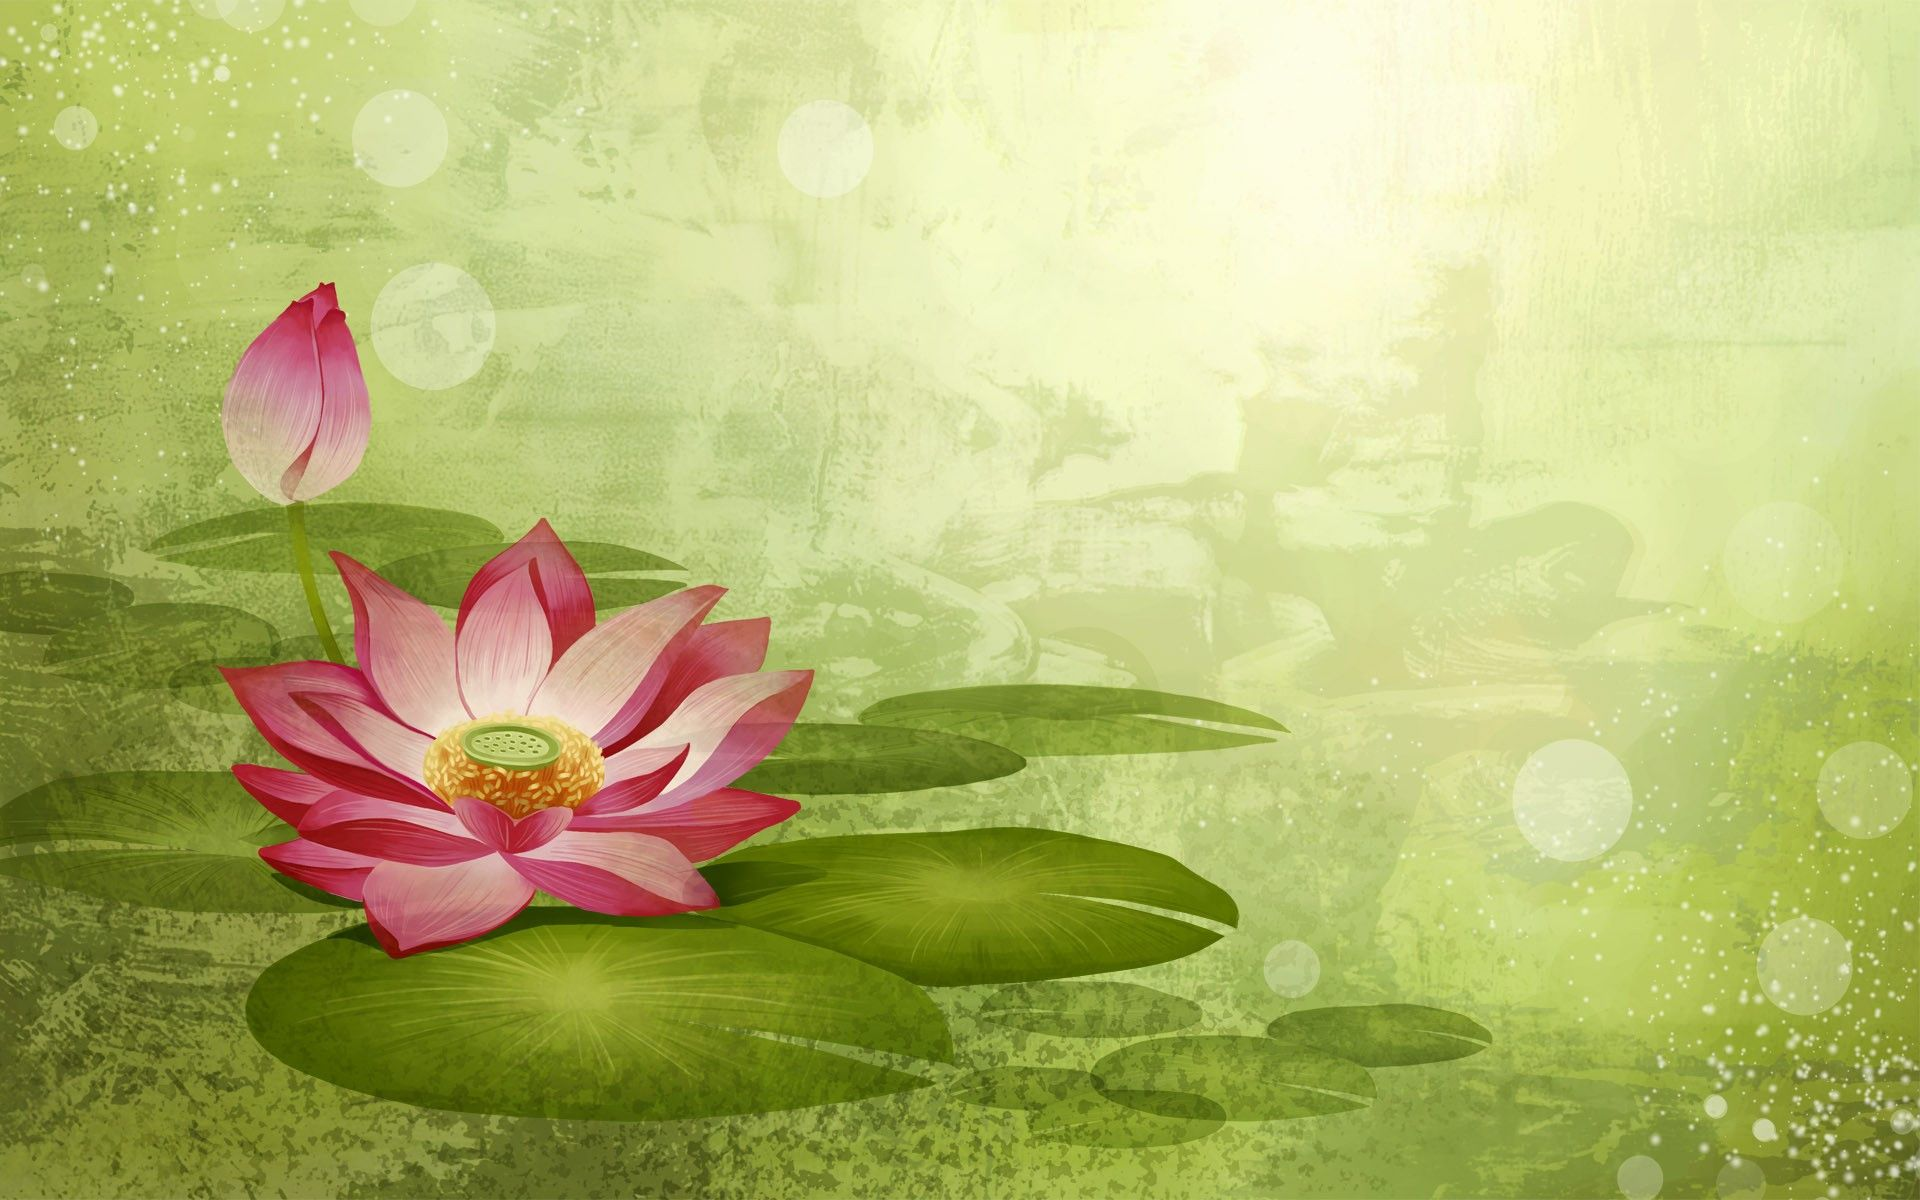 I like everything about this color palette japanese artistic i like everything about this color palette japanese artistic approach focal point lotus flower izmirmasajfo Choice Image